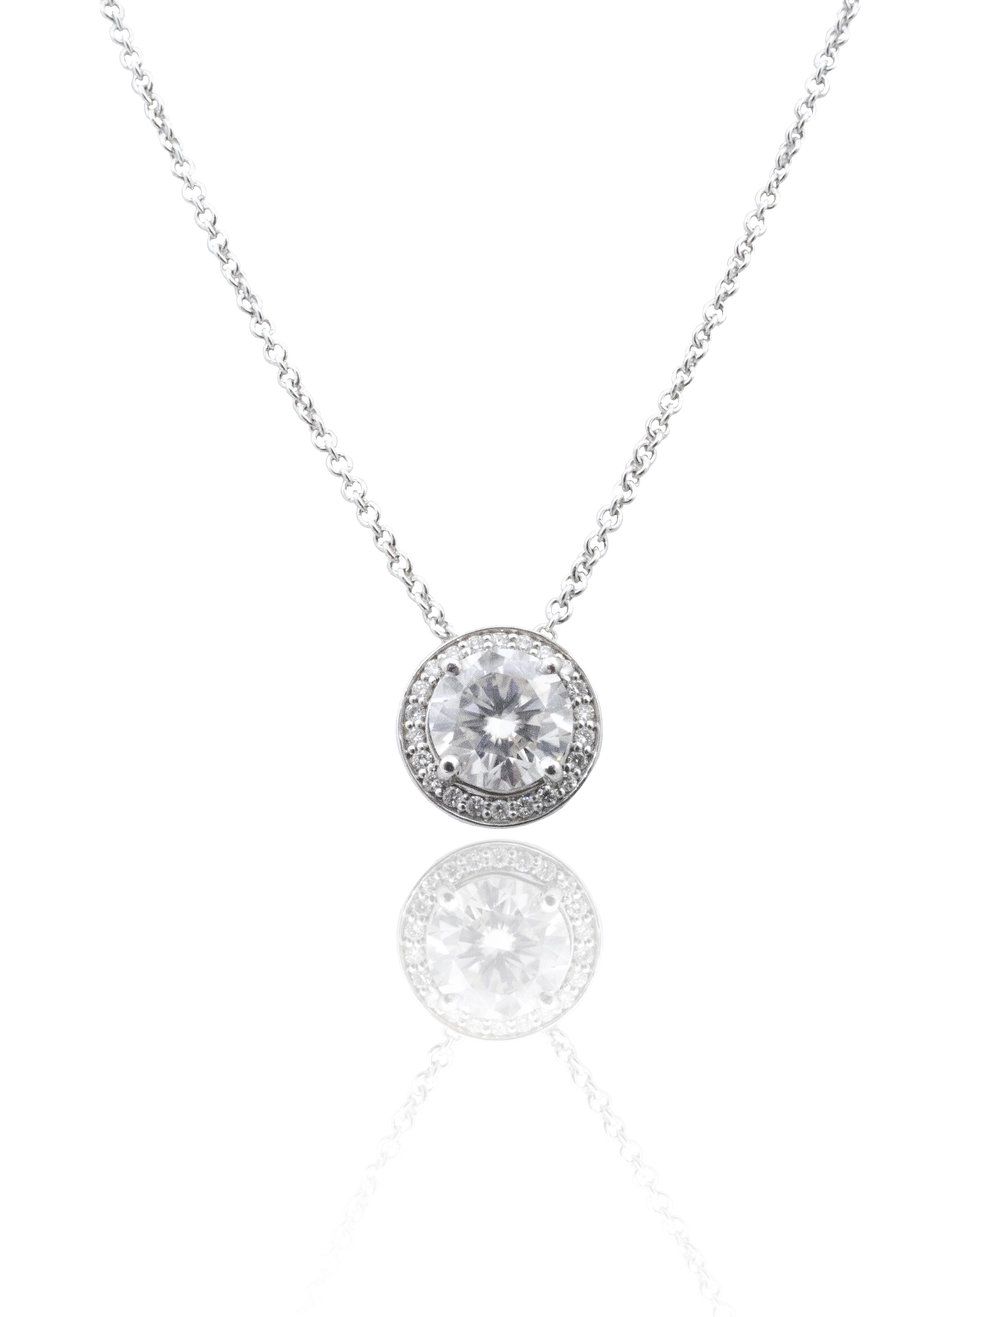 Moissanite diamond necklace! - SOLD!